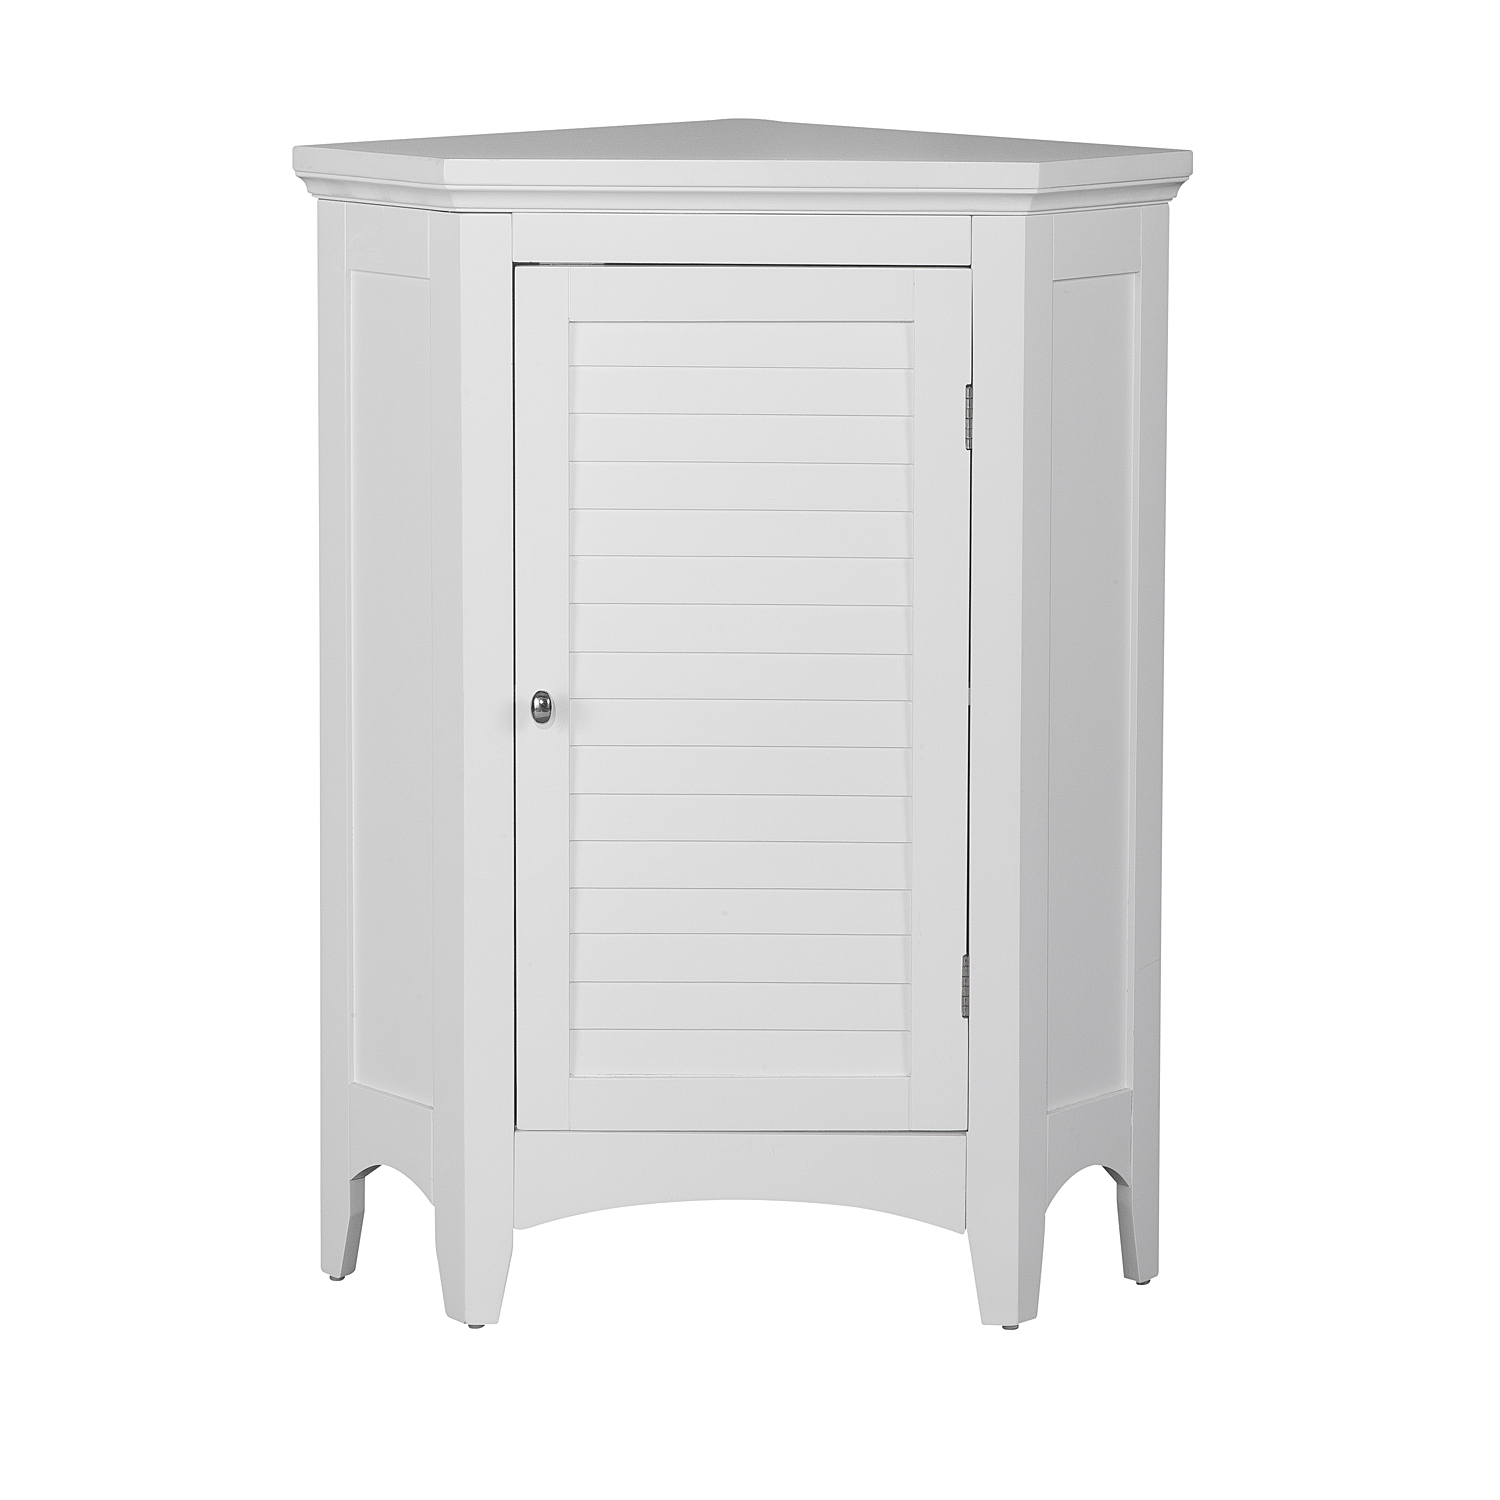 Exceptionnel Elegant Home Fashions Sicily Corner Floor Cabinet With 1 Shutter Door, White